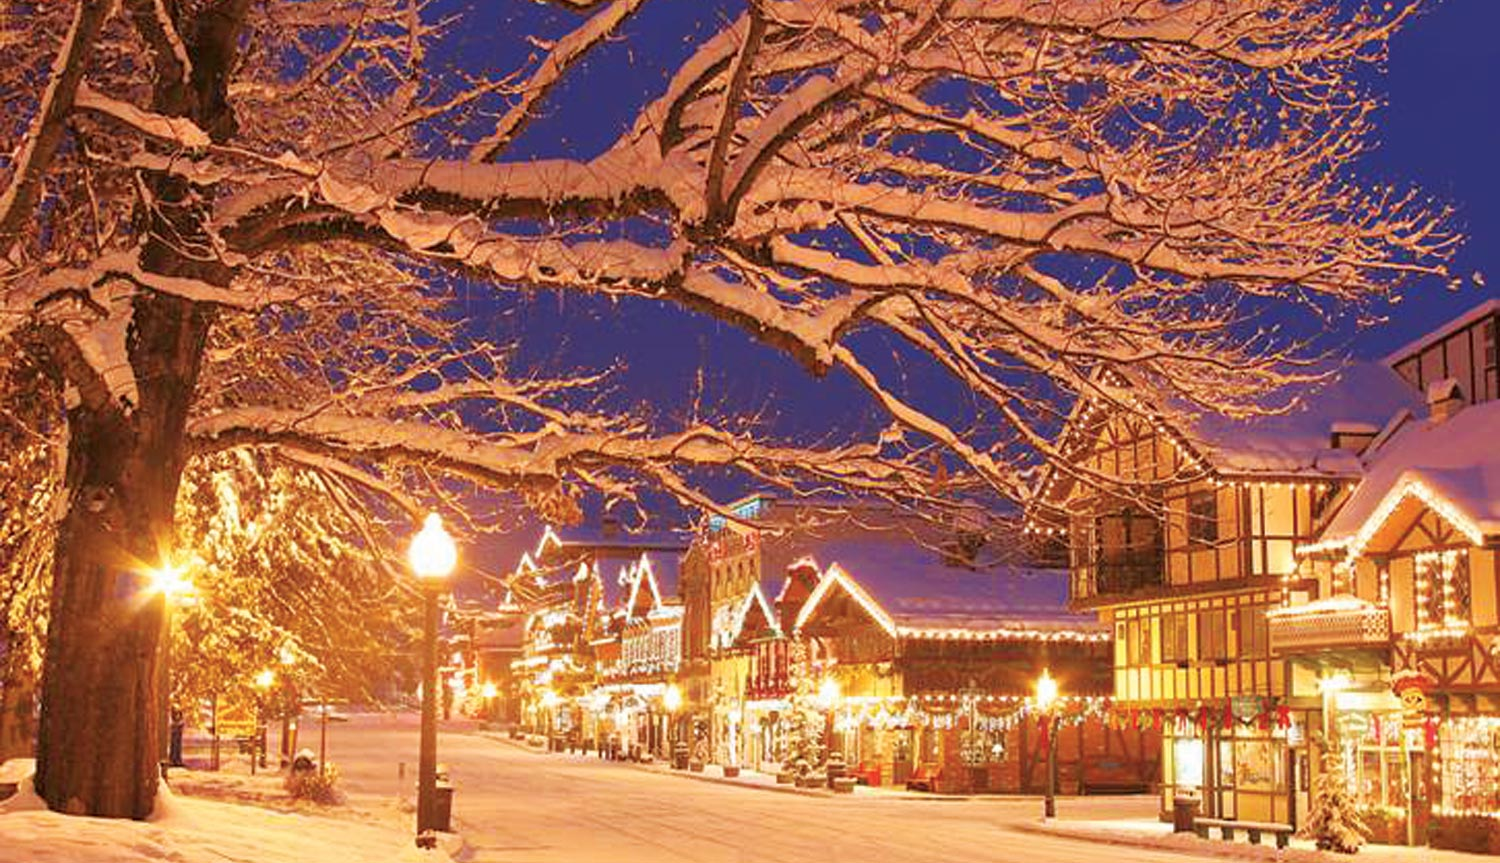 Ma Lighting Switzerland Leavenworth Christmas Lighting Festival Day Trip From